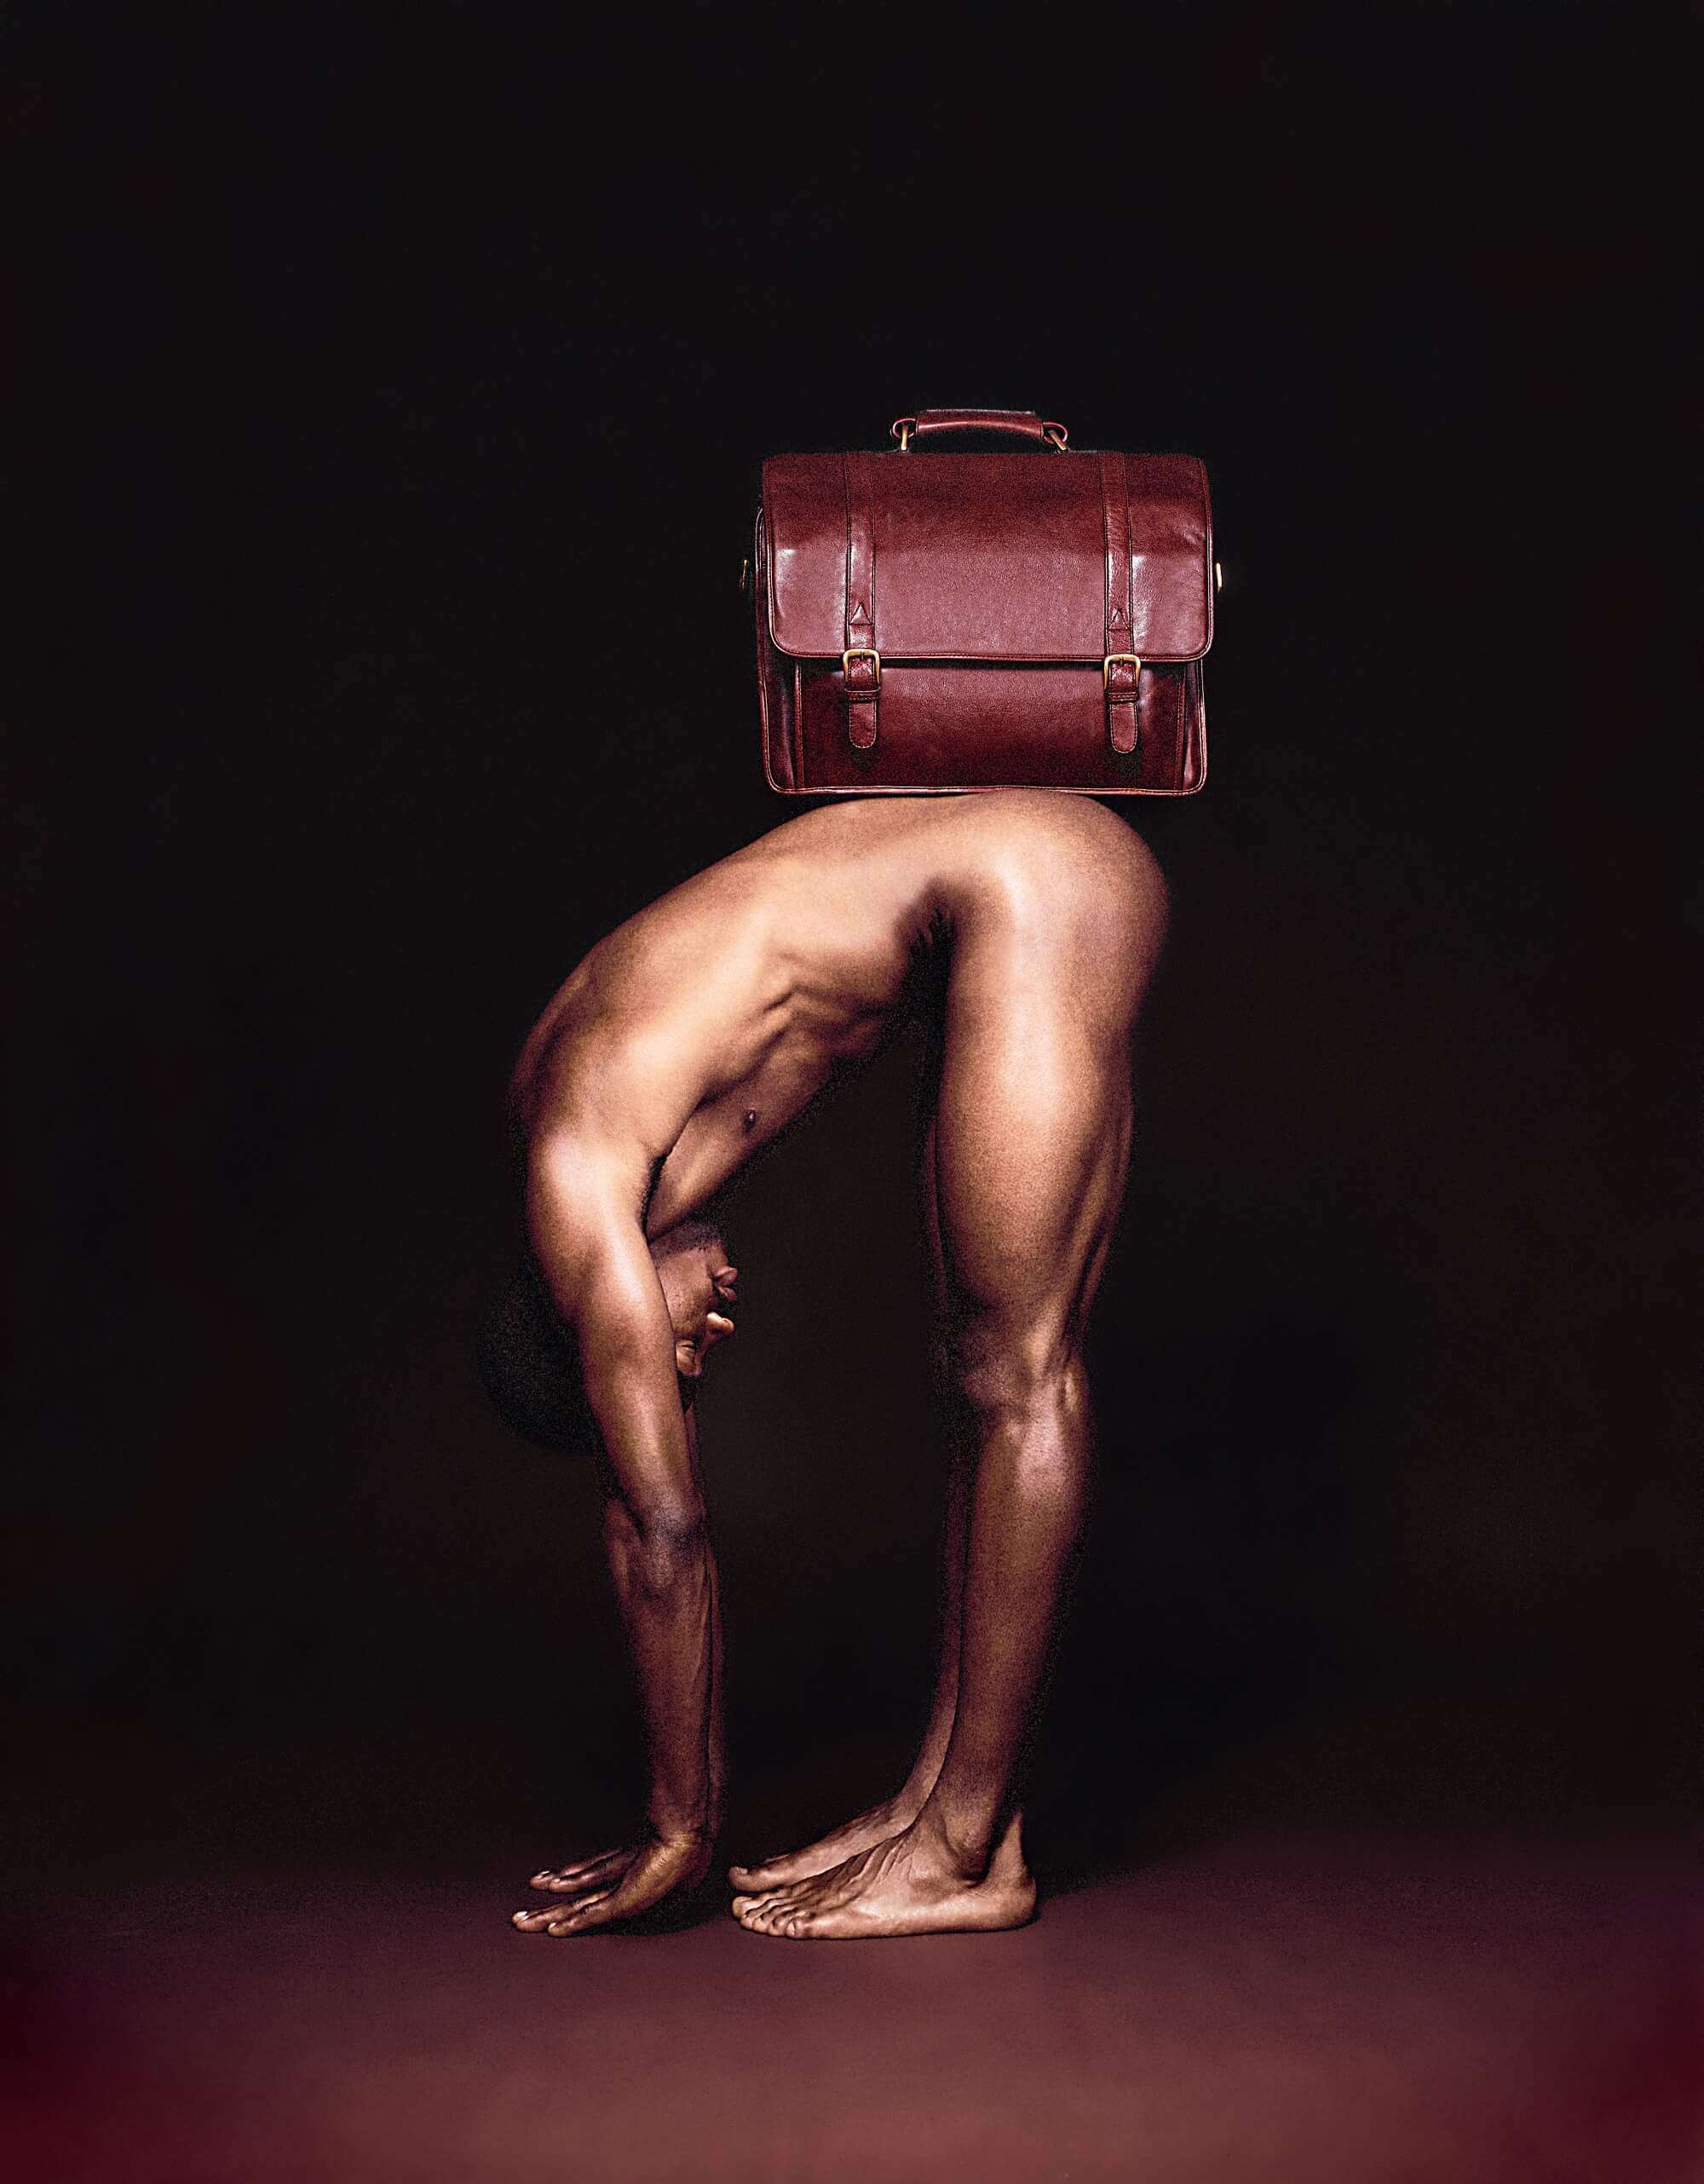 naked male model with brown leather briefcase